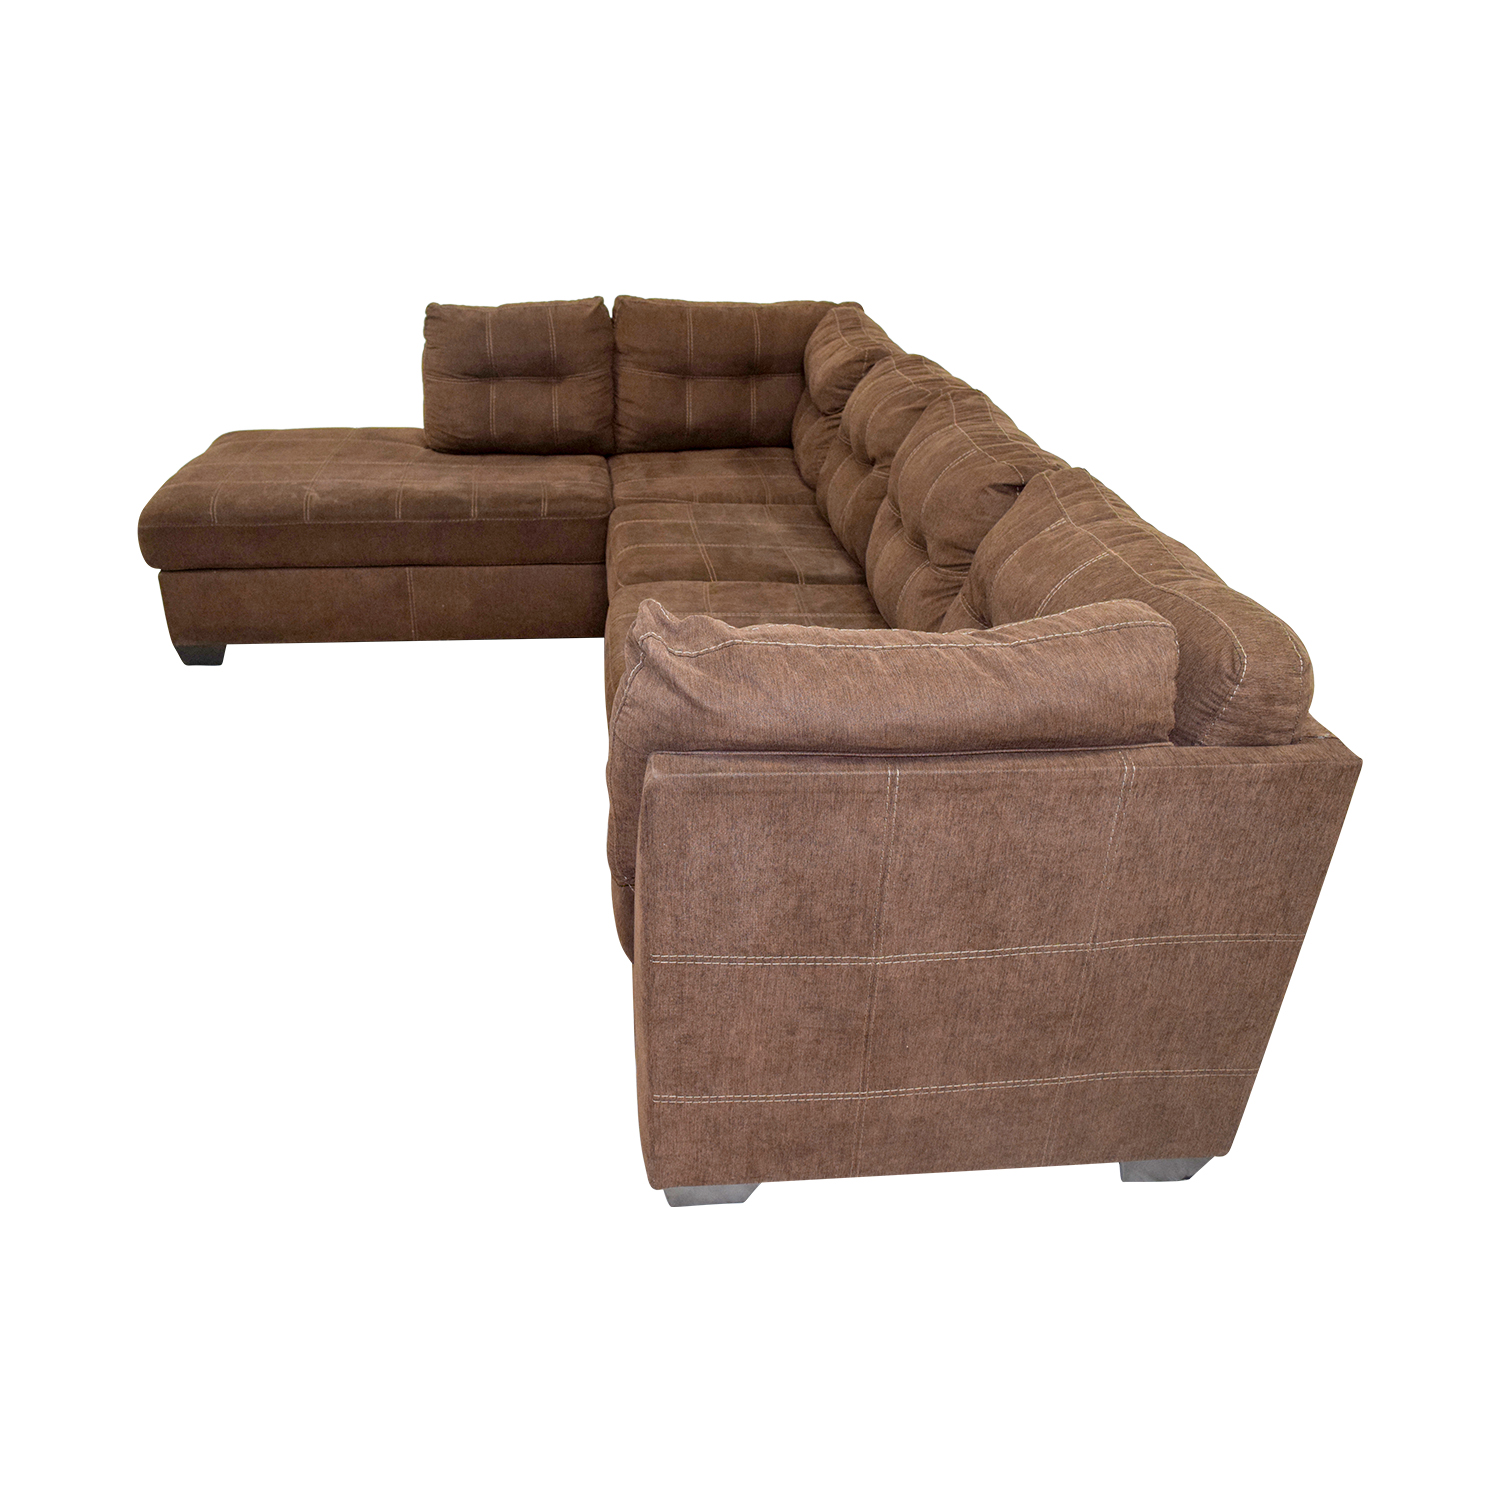 shop Brown L-Shaped Chaise Sectional Sofa online